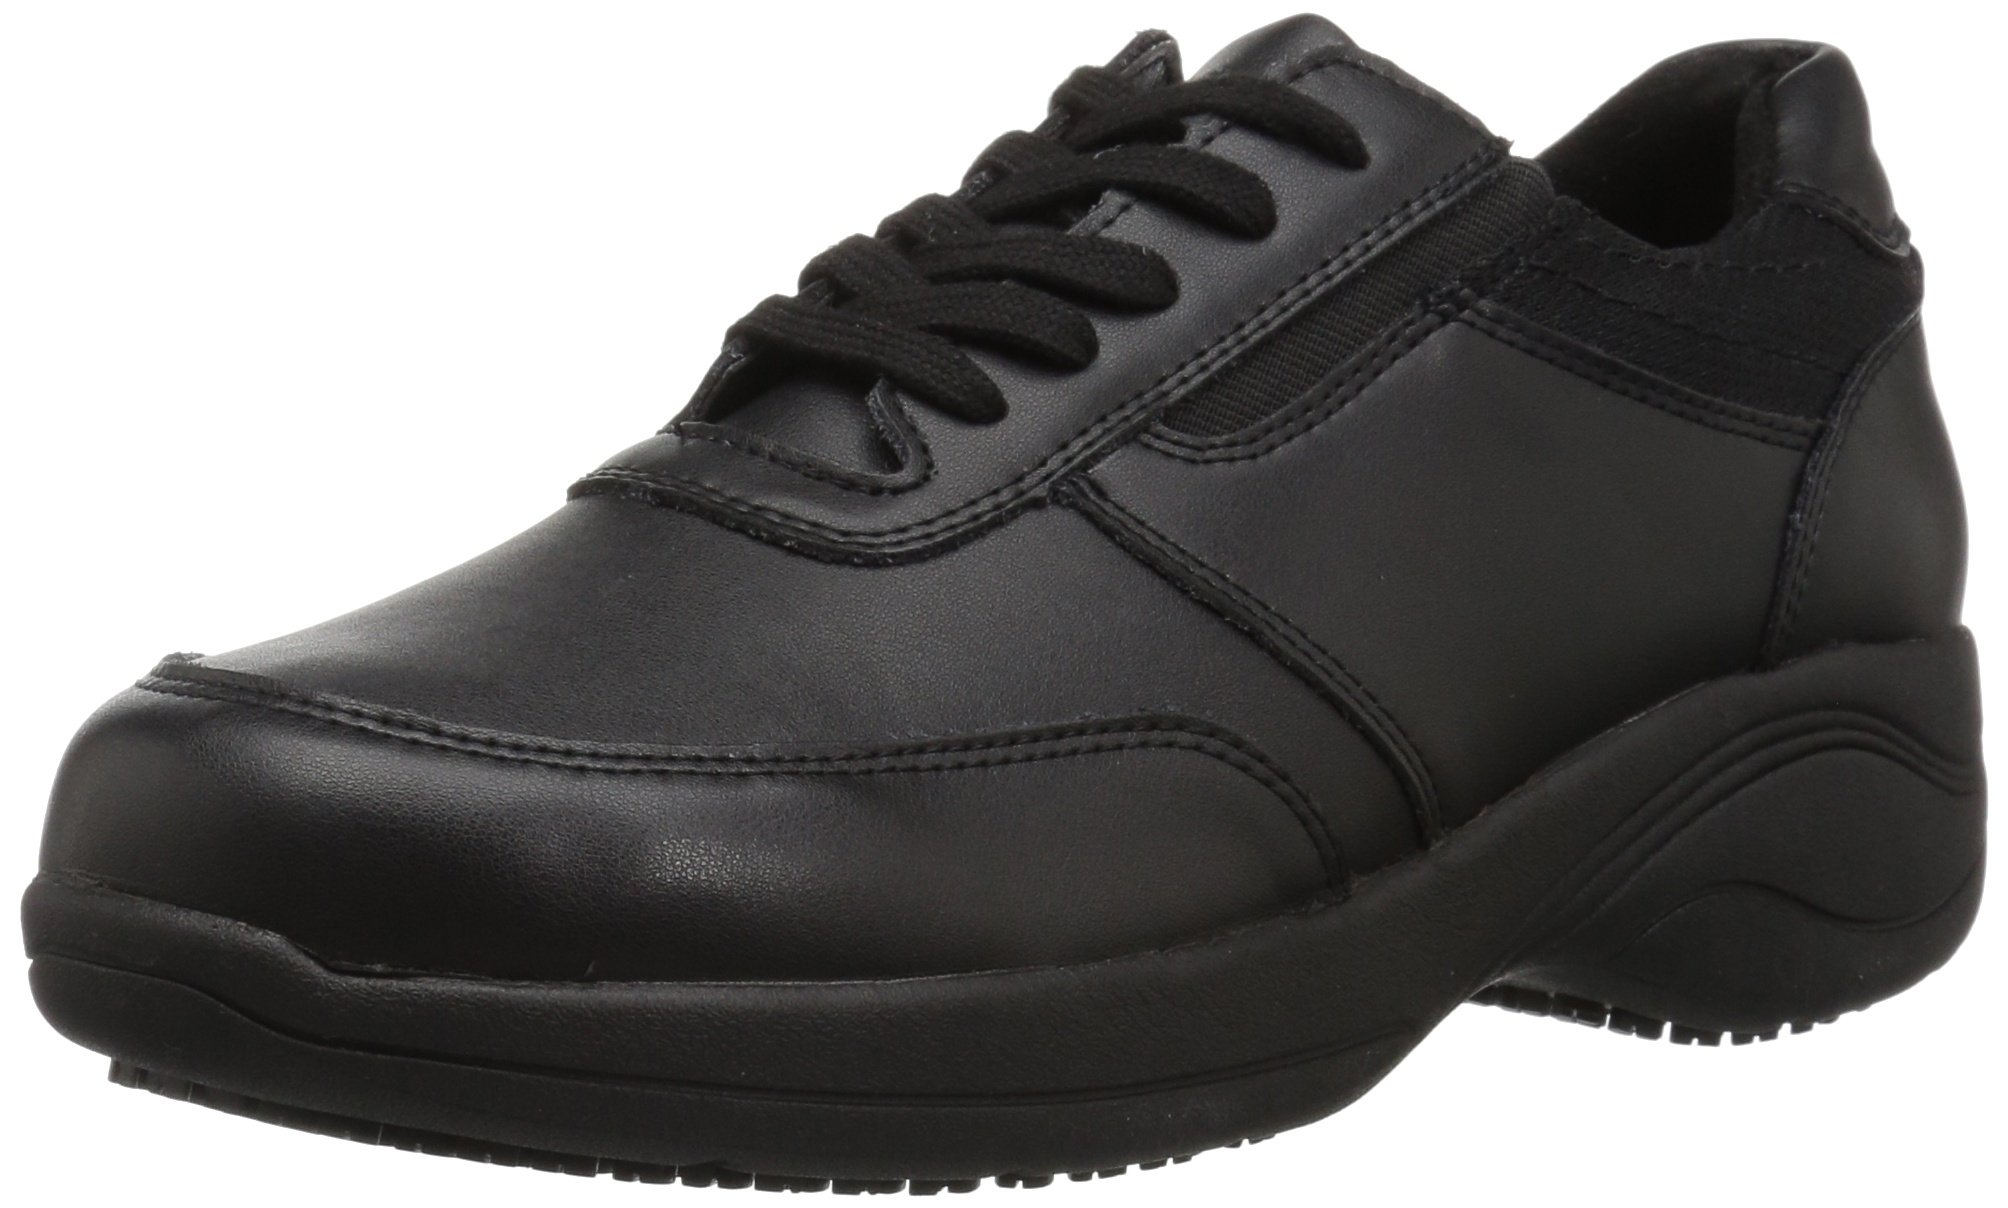 Easy Works Women's Middy Health Care Professional Shoe, Black/mesh, 9 2W US by Easy Works